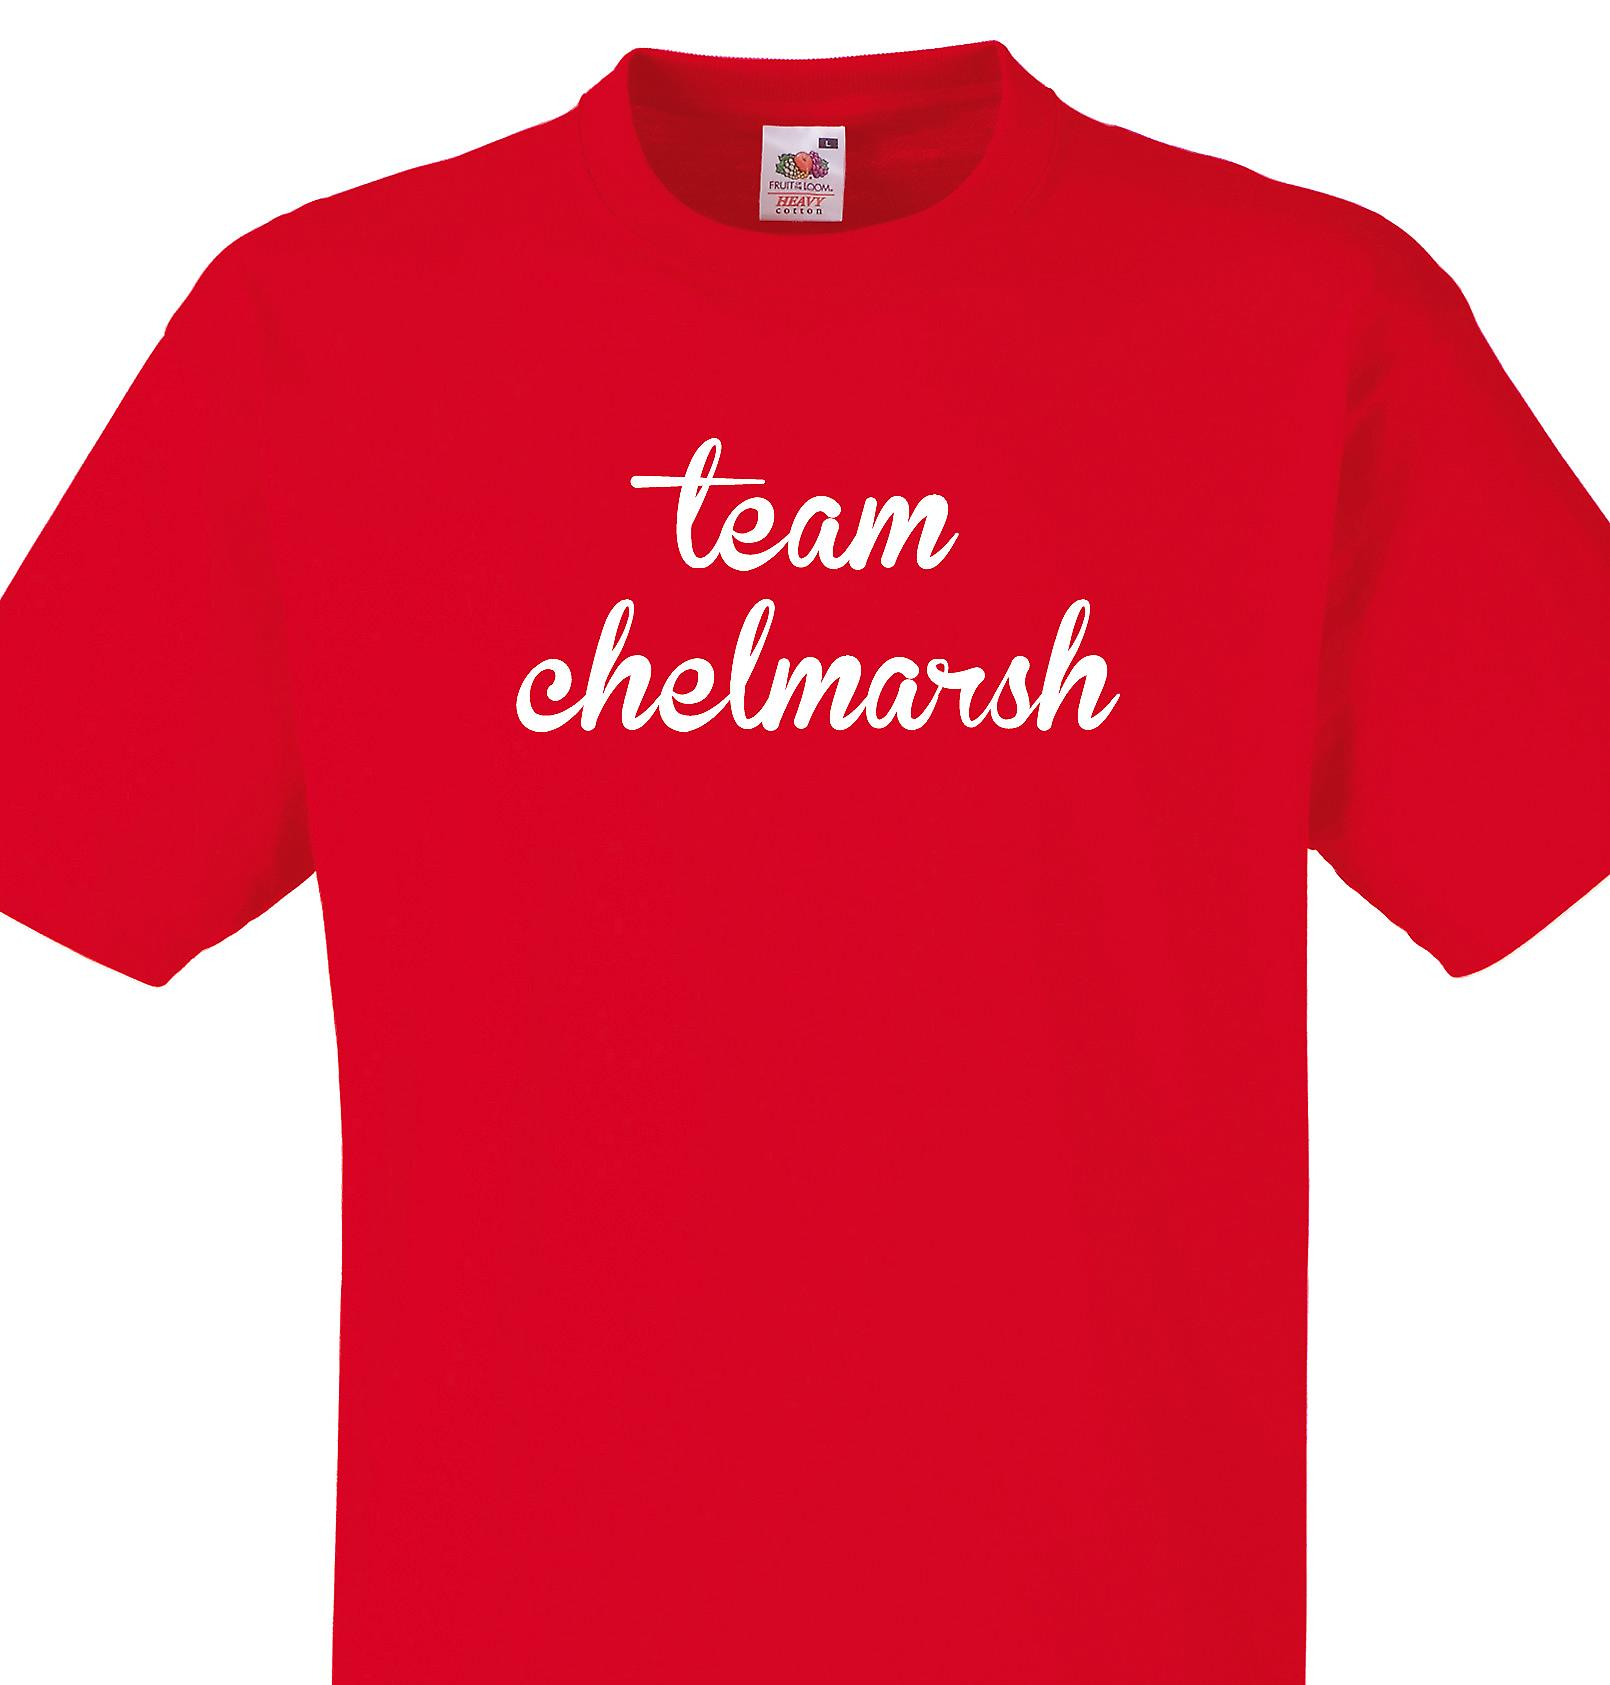 Team Chelmarsh Red T shirt